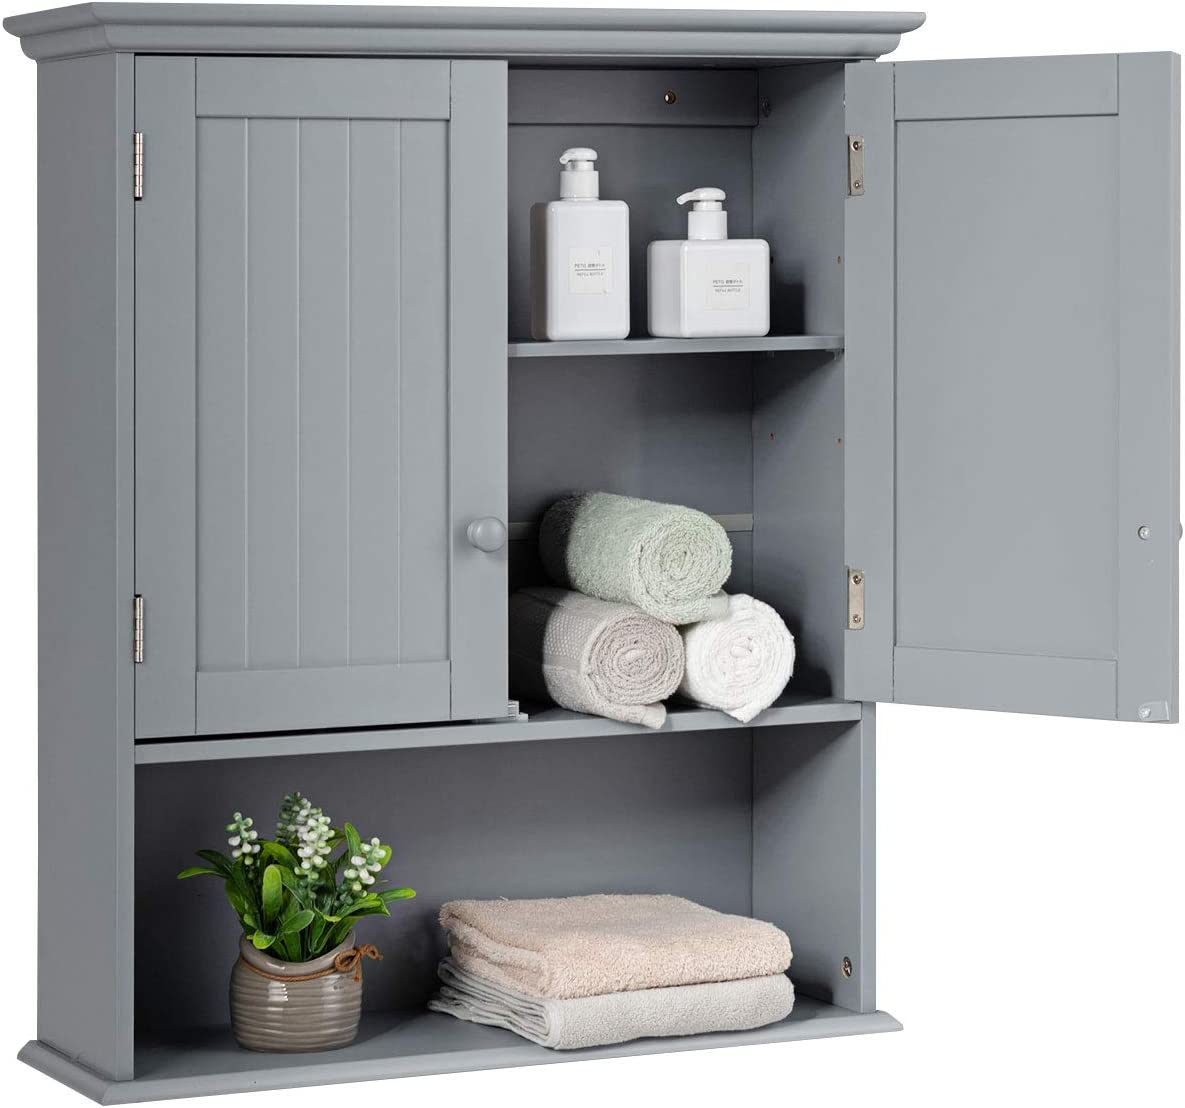 Tangkula Wall Mount Bathroom Cabinet Wooden Medicine Cabinet Storage Organizer With 2 Doors And 1 Shelf Cottage Collection Wall Cabinet Grey Kitchen Dining